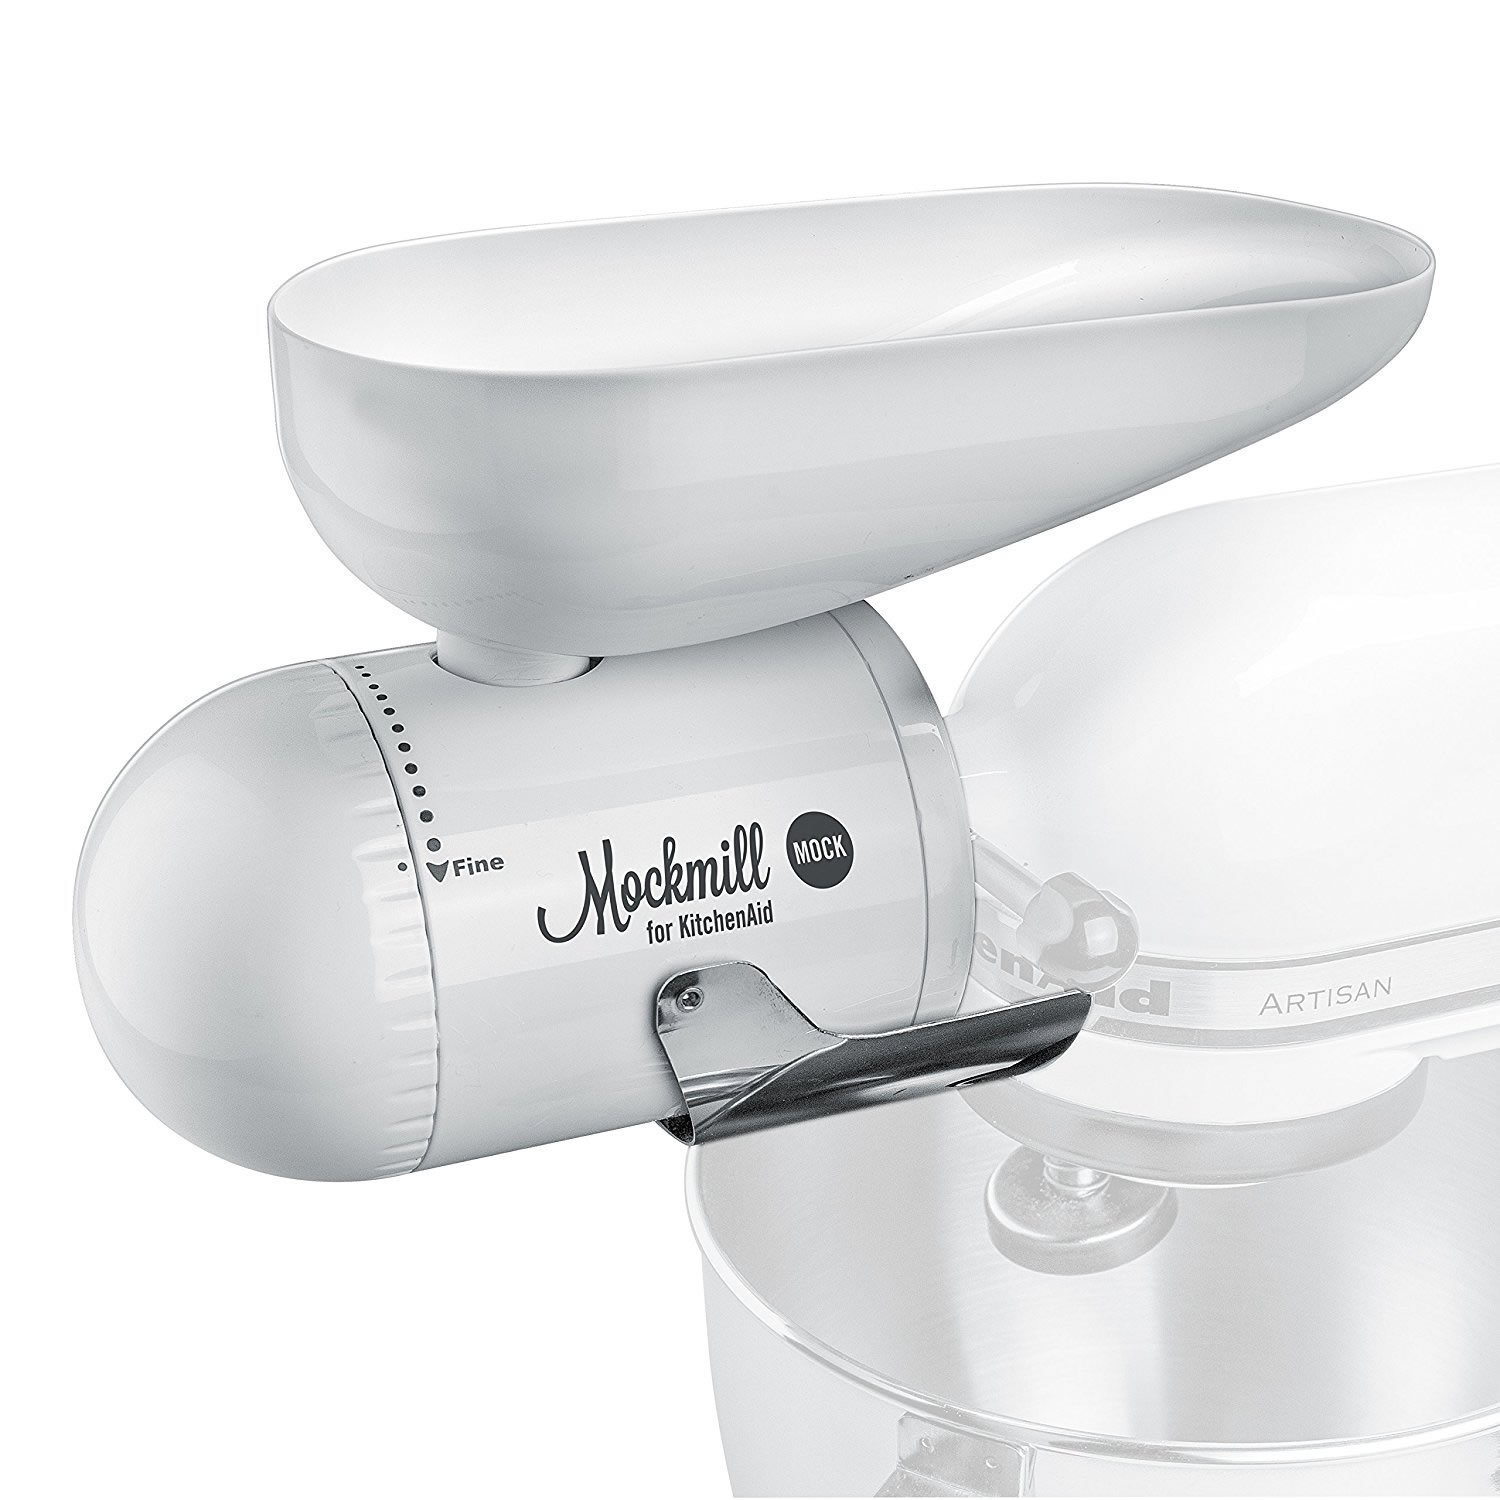 Wolfgang Mock Mockmill KitchenAid White Metal and Ceramic...